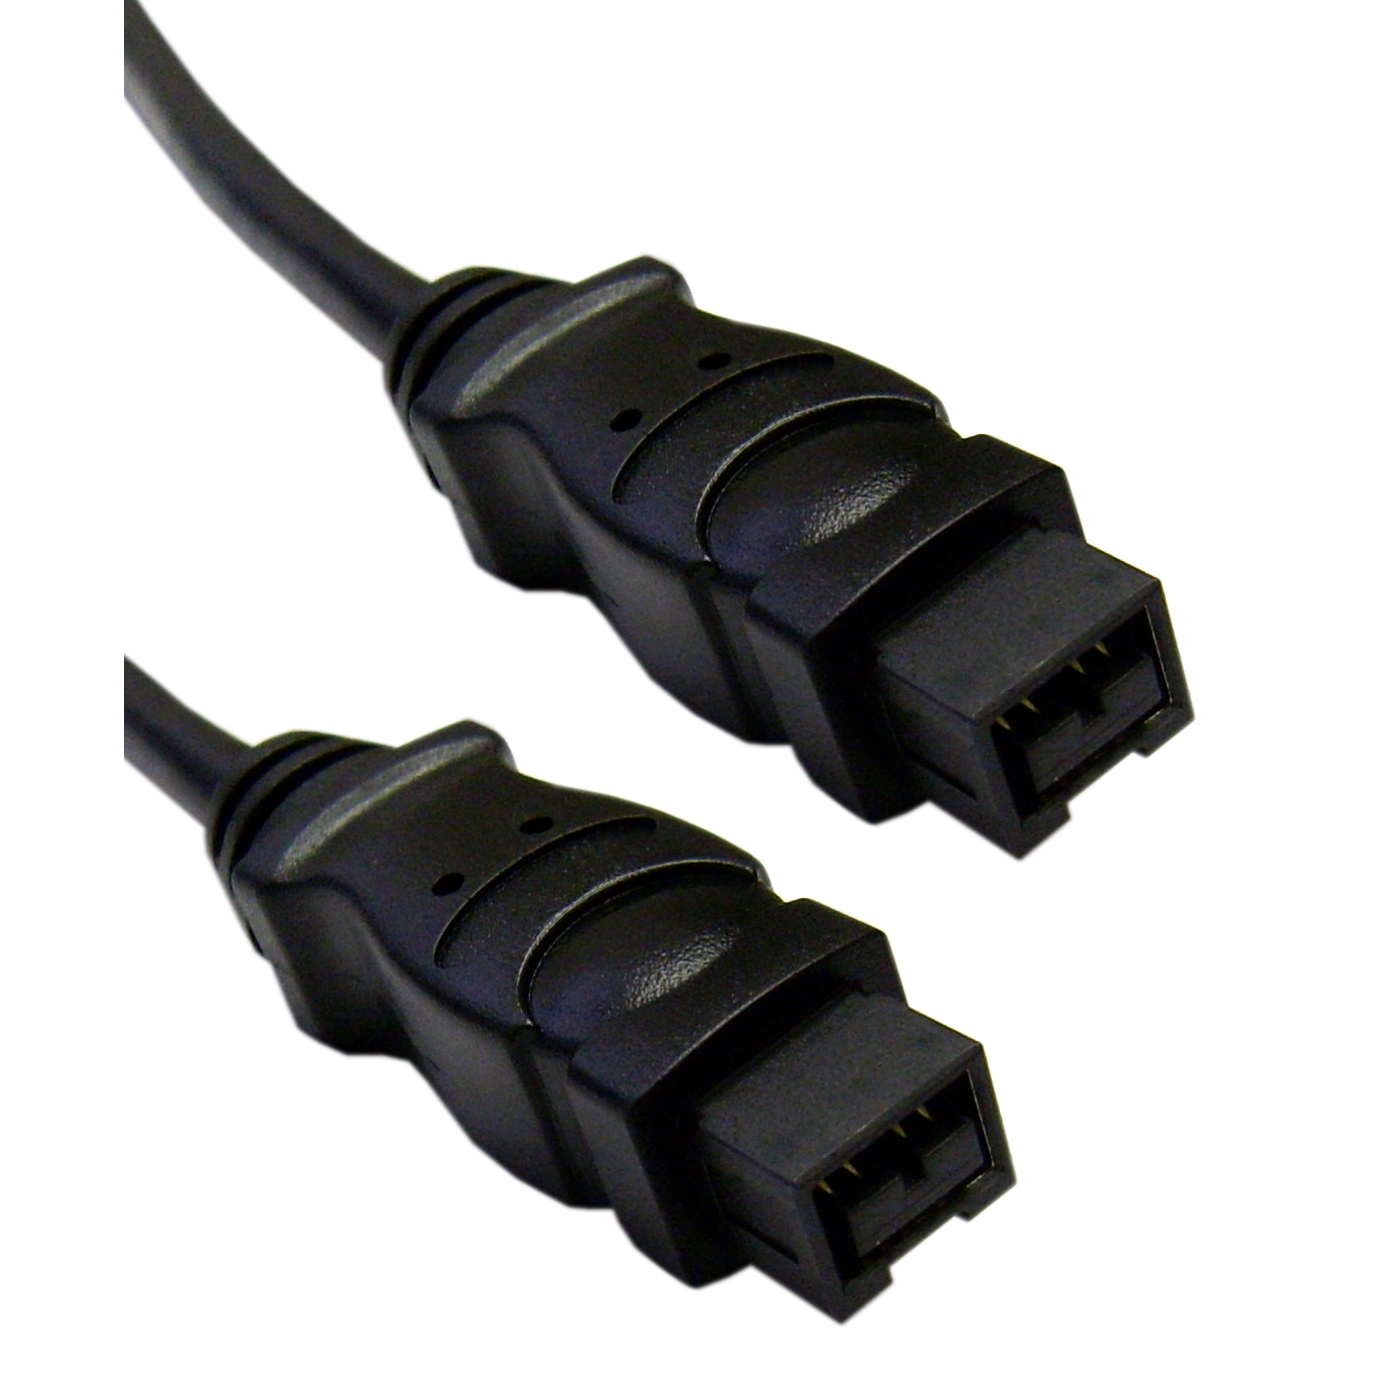 3ft FireWire 800 (IEEE-1394b) 9 Pin to 9 Pin Cable - Black